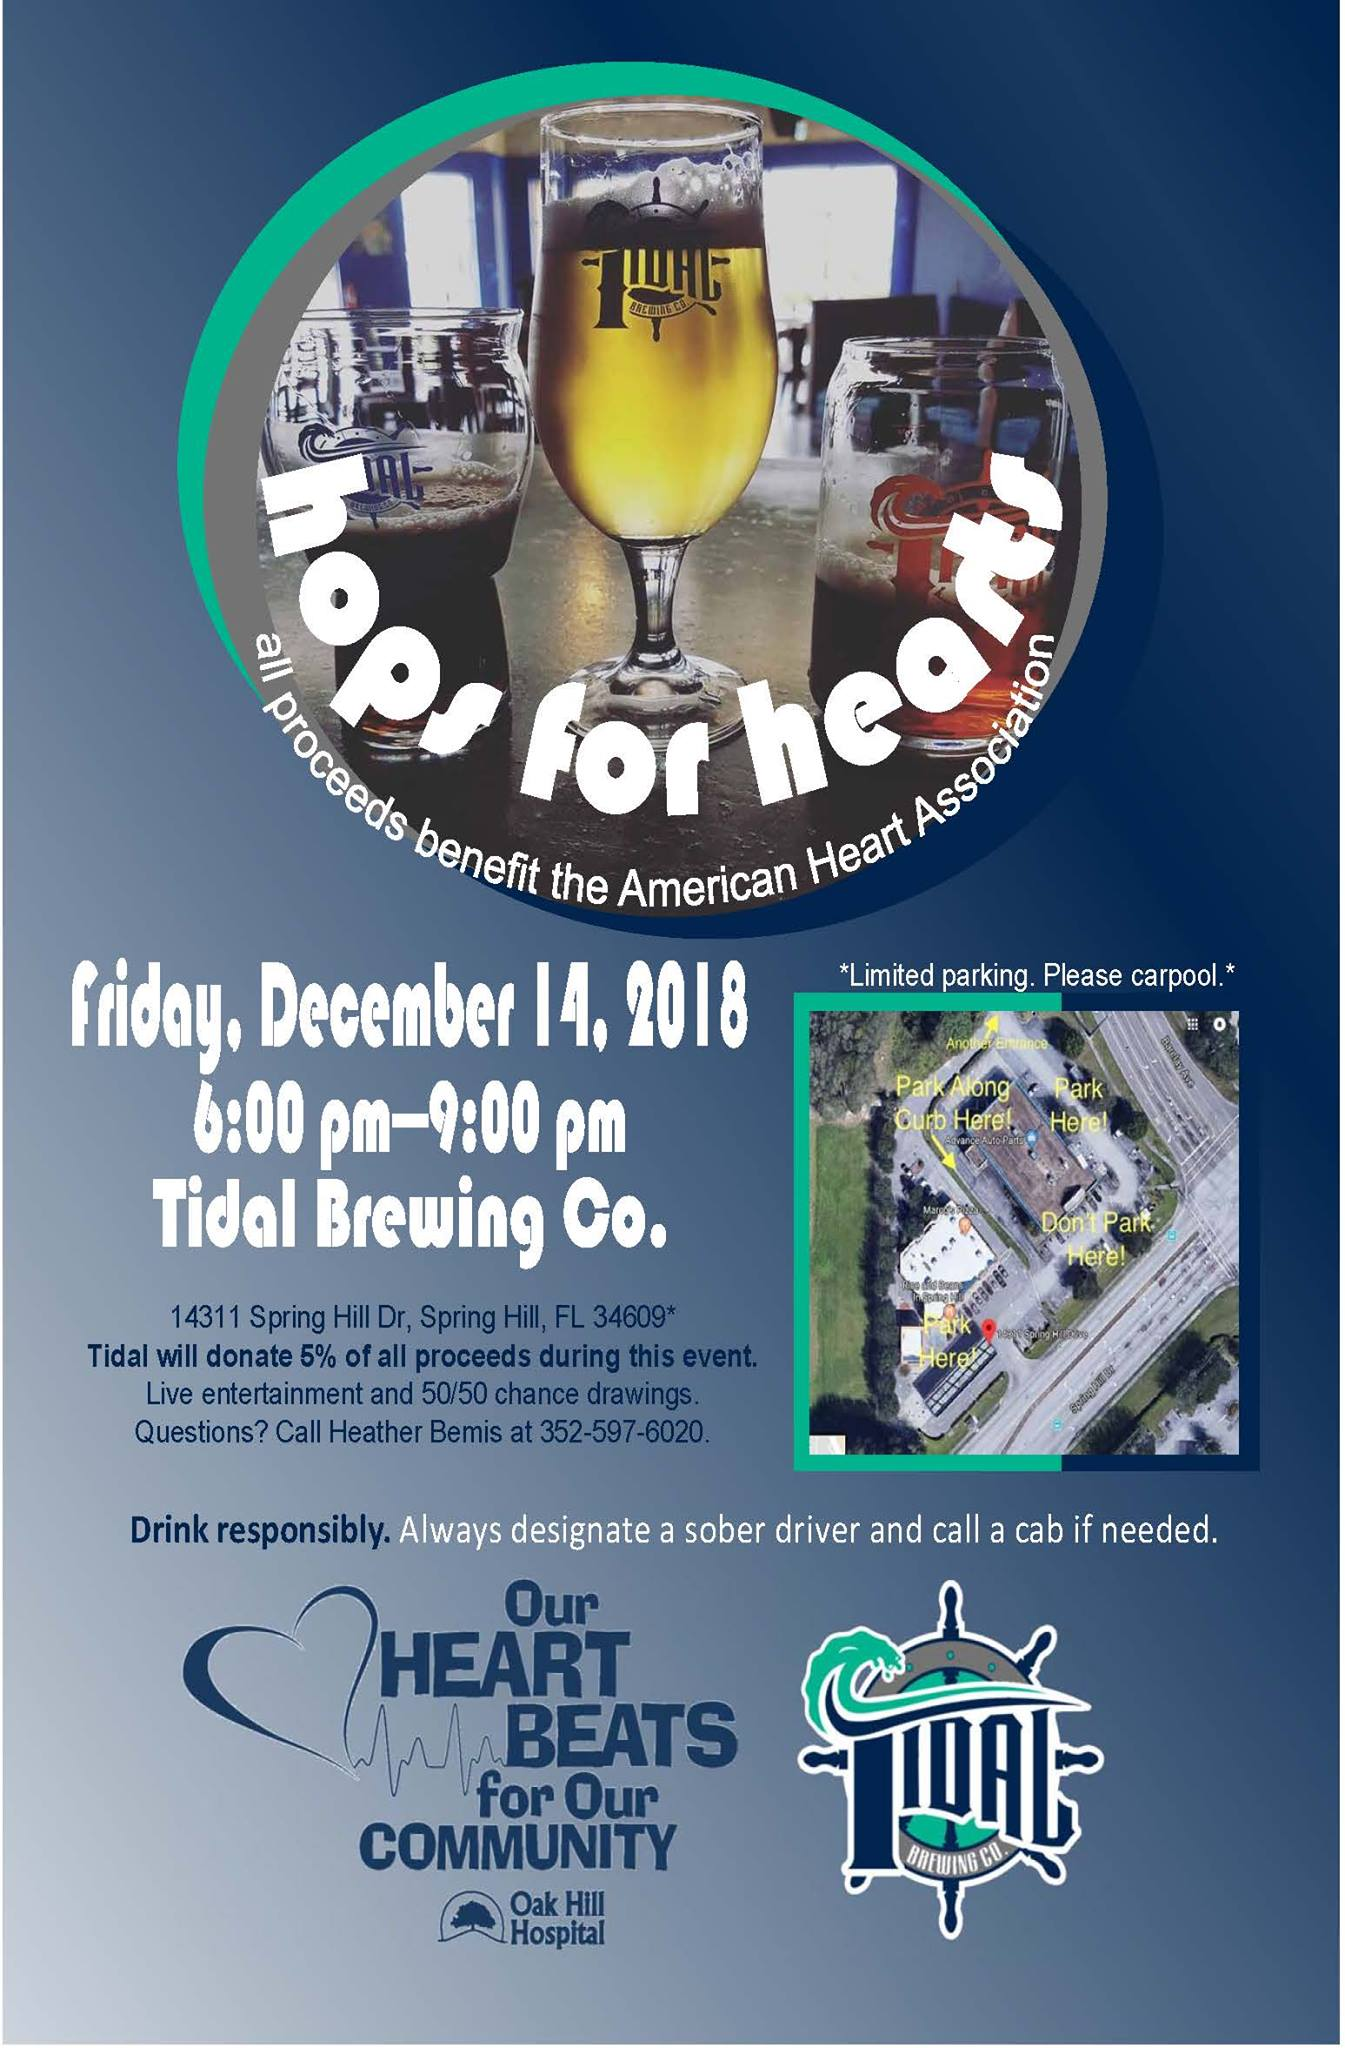 Hops For Hearts Benefiting The American Heart Association Tidal